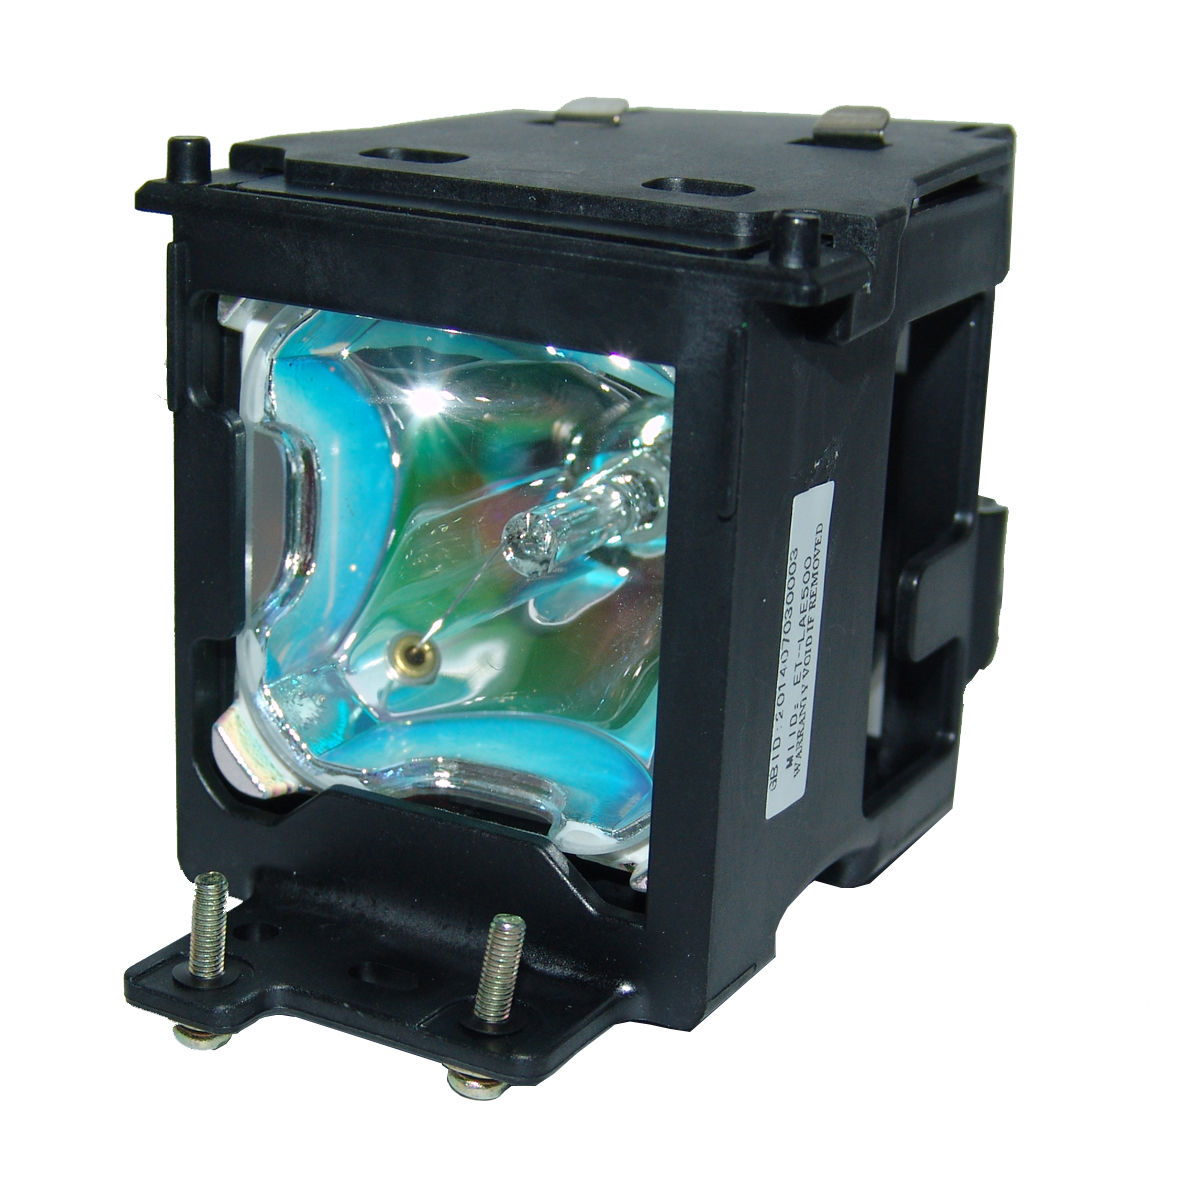 ET-LAE500 LAE500 ETLAE500 For Panasonic PT-AE500E PT-AE500 PT-AE500U PT-L500U Projector Bulb Lamp with housing projector lamp bulb et lab80 etlab80 for panasonic pt lb75 pt lb80 pt lw80ntu pt lb75ea pt lb75nt with housing